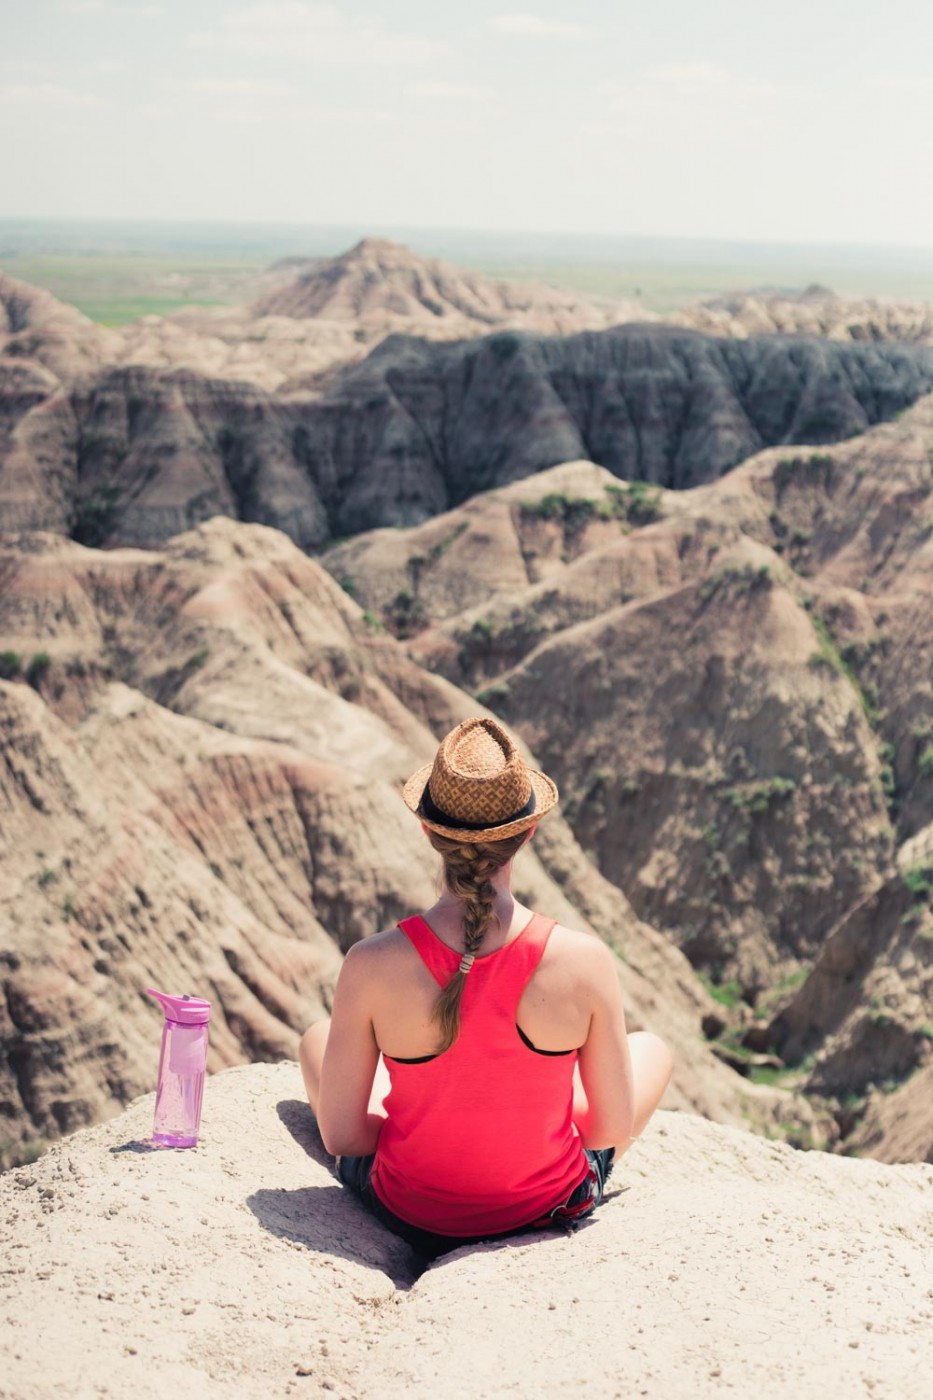 Diana Southern at viewpoint in Badlands National Park, South Dakota